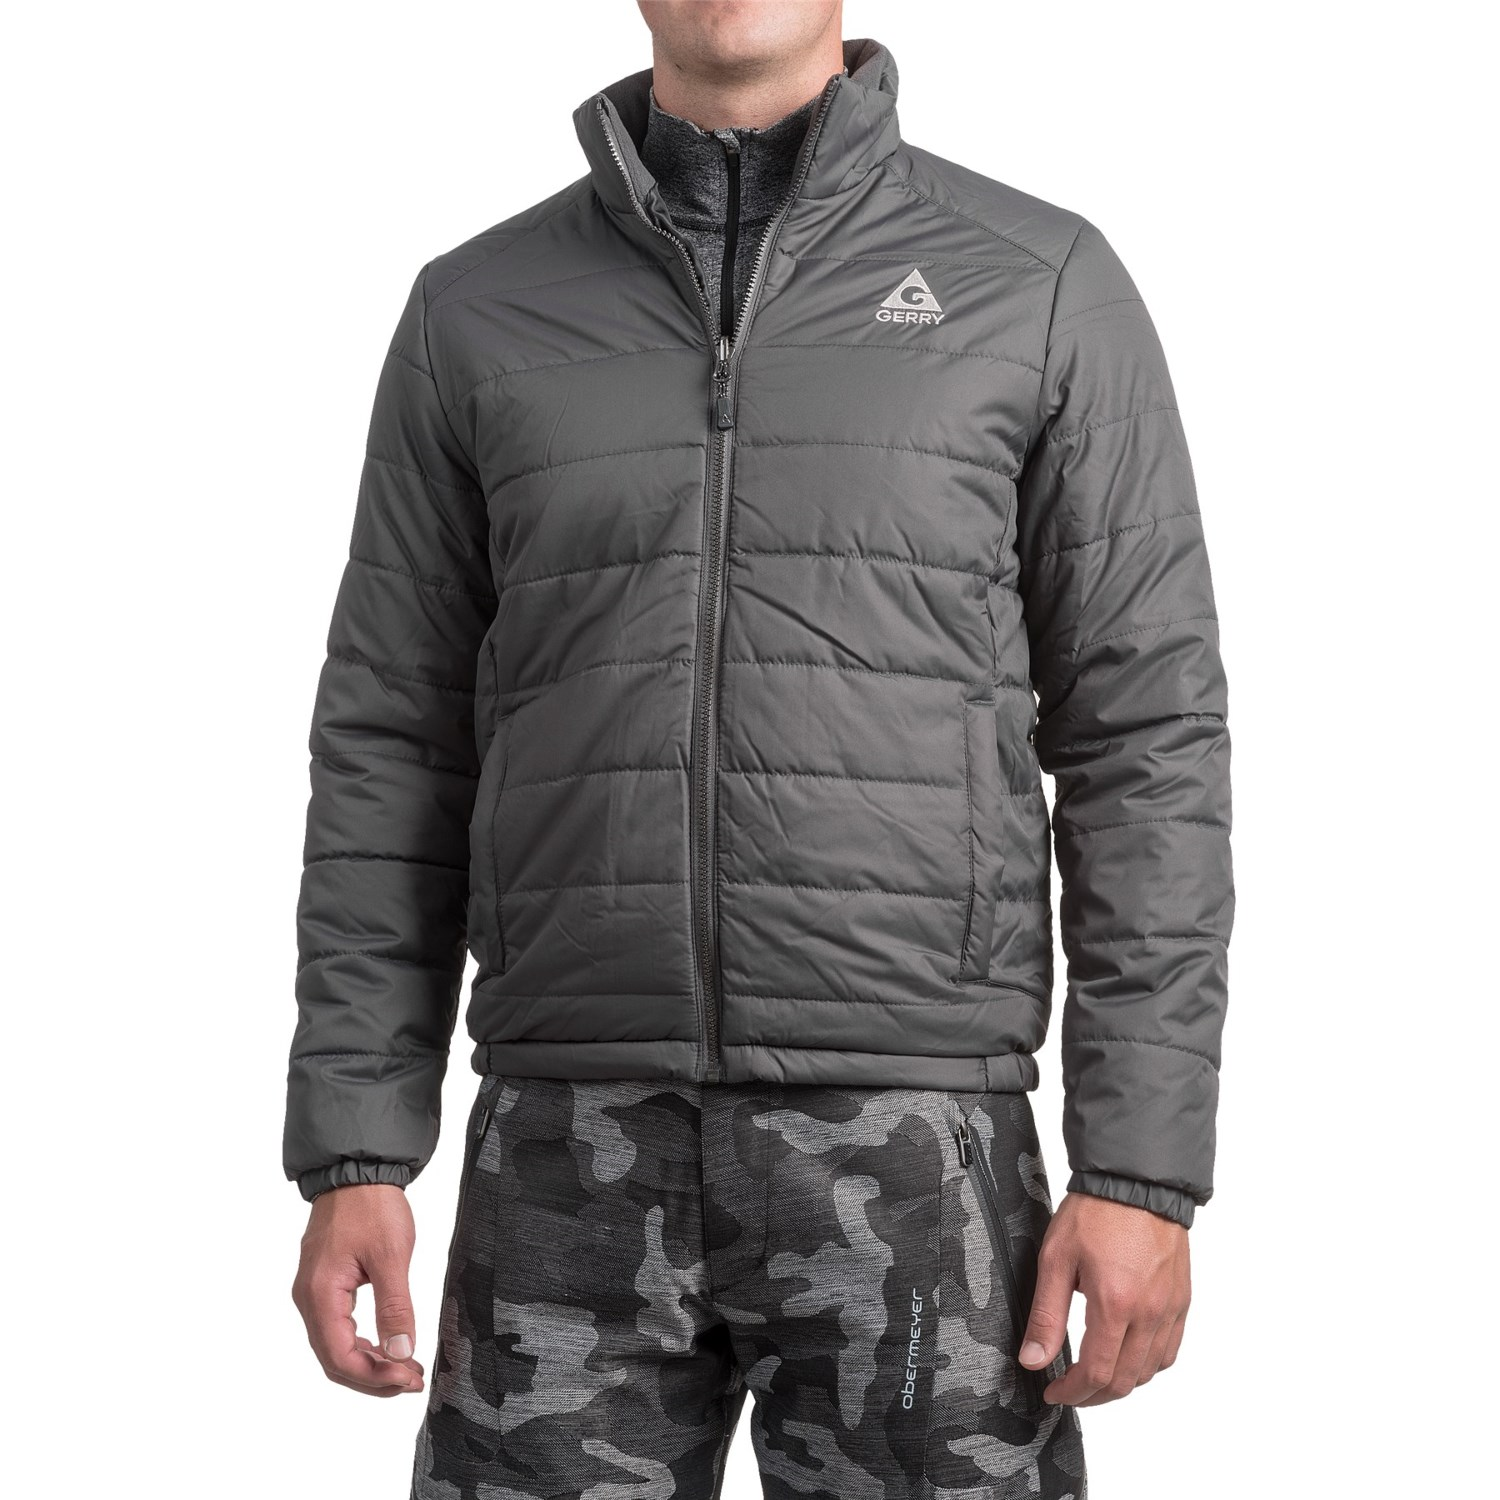 Gerry Crusade 3-in-1 Jacket (For Men) - Save 75%